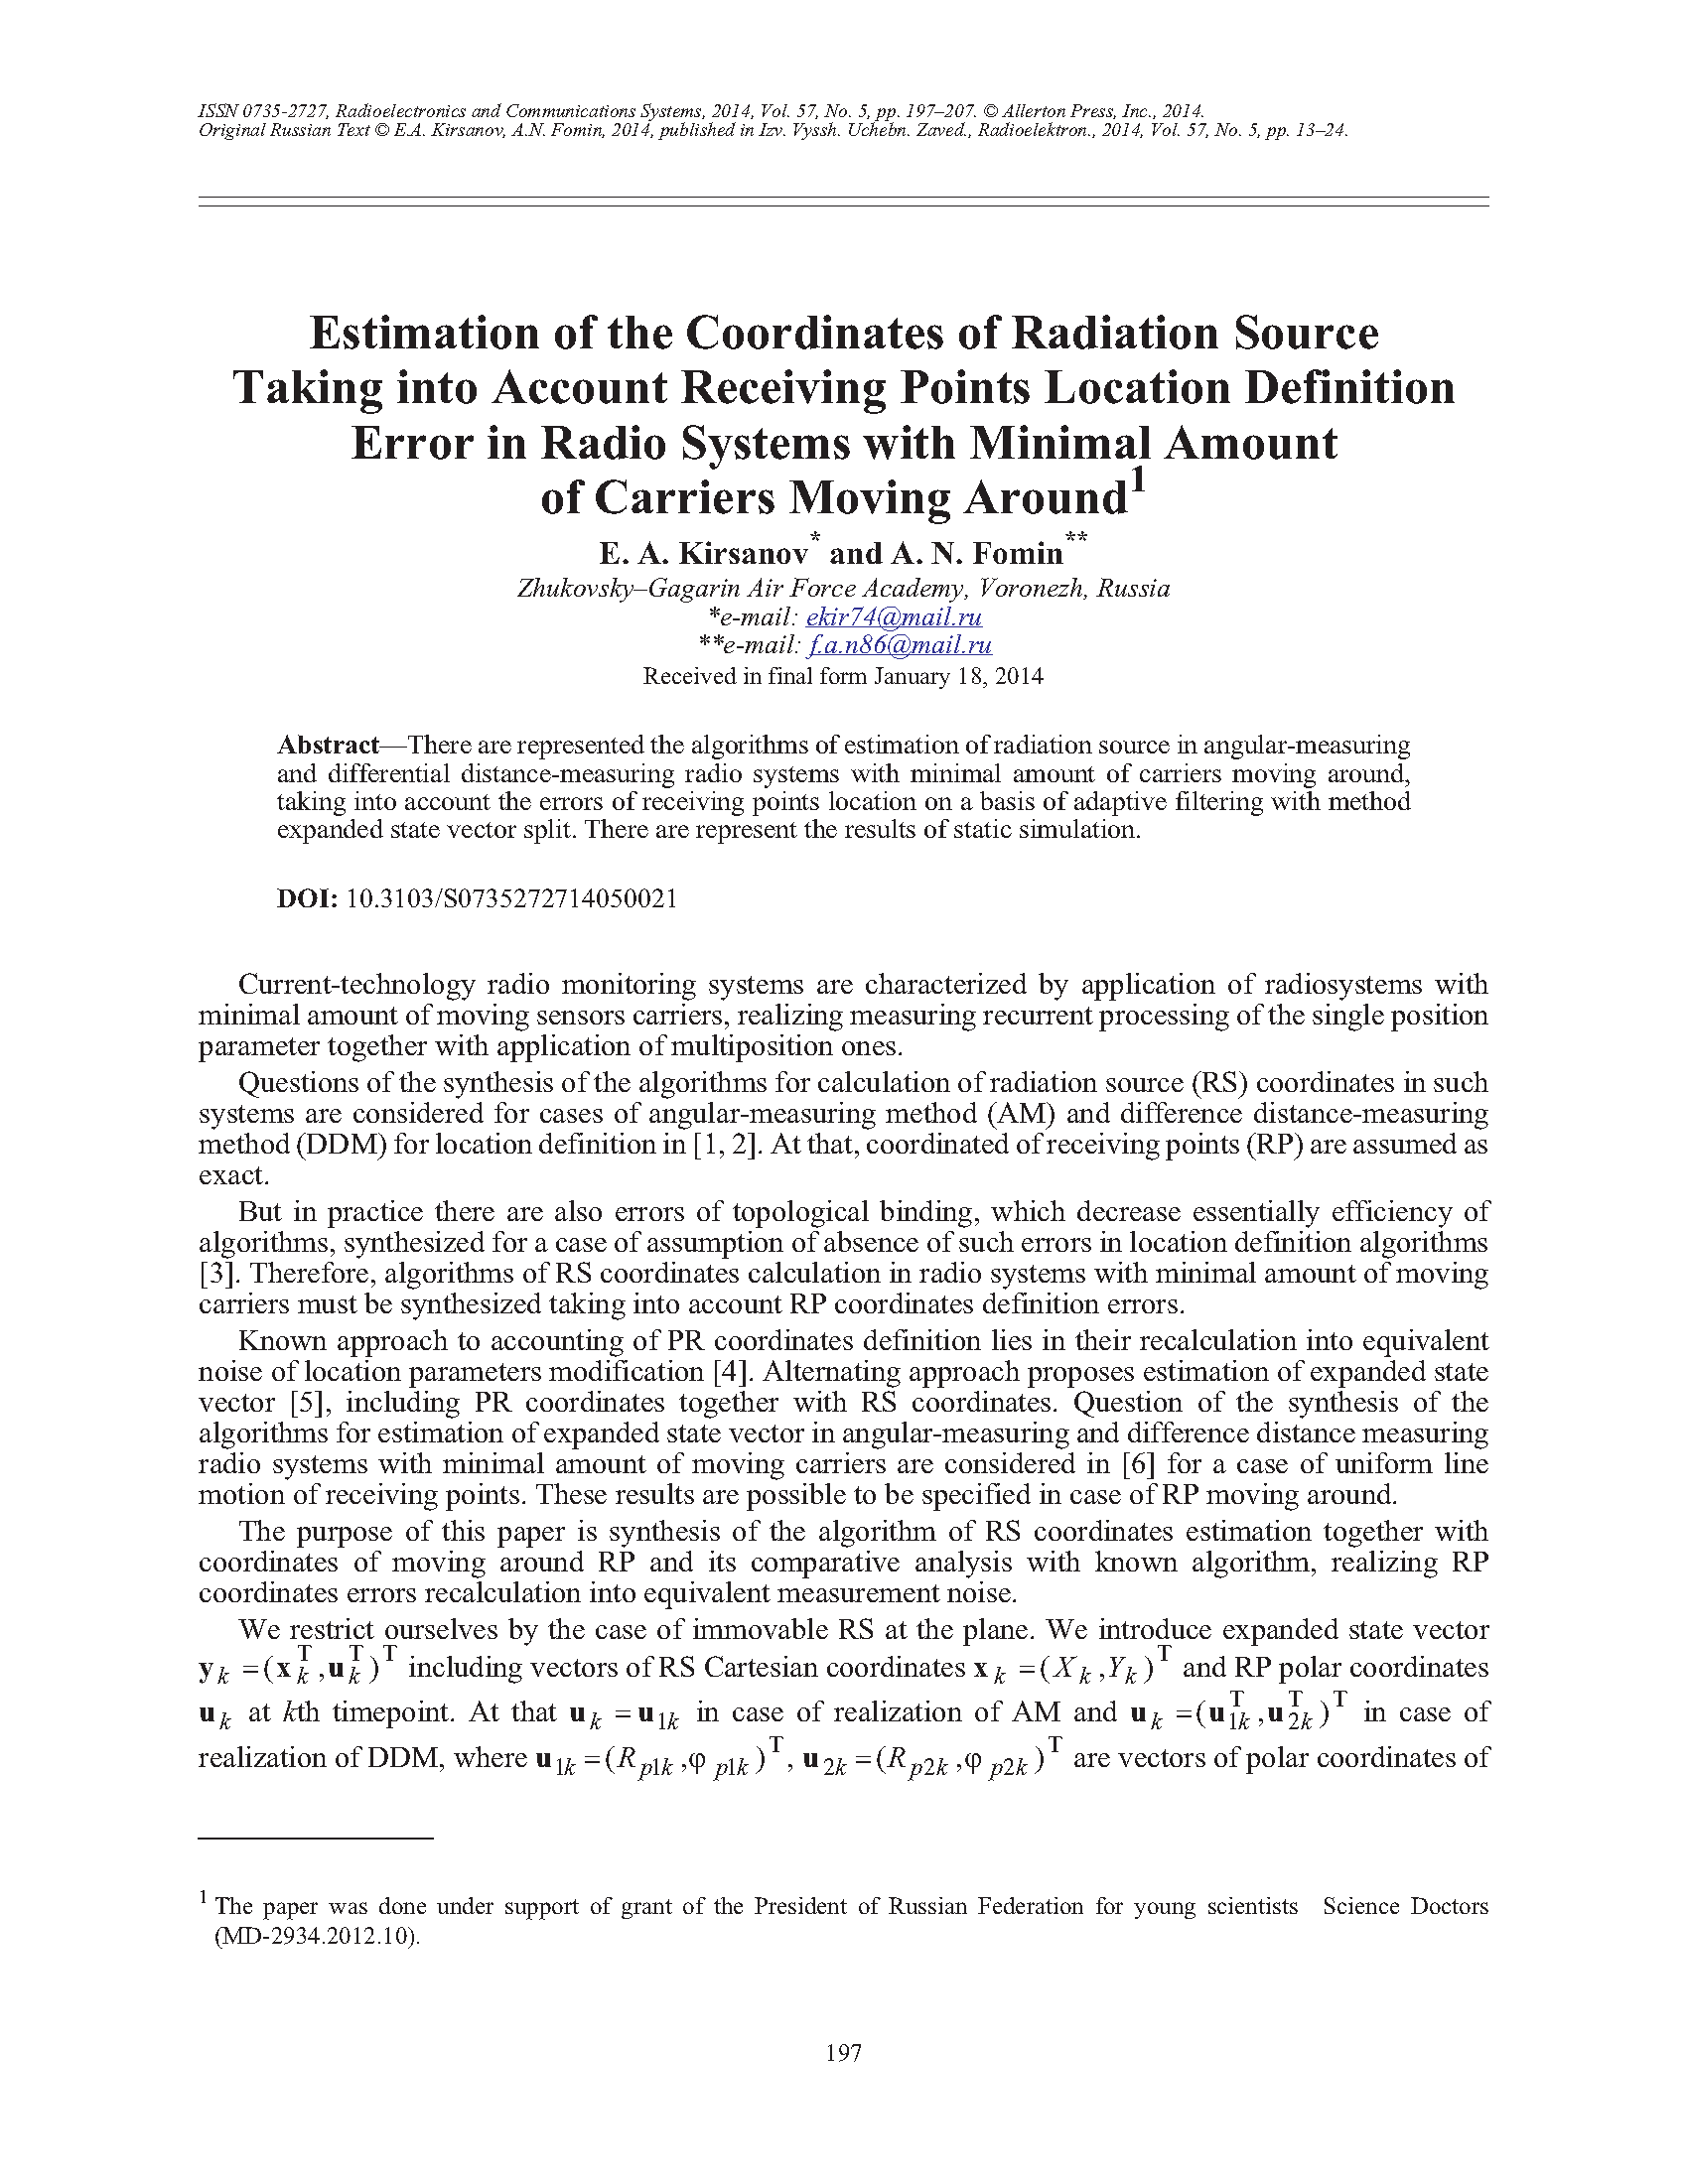 Kirsanov, E.A. Estimation of the coordinates of radiation source taking into account receiving points location definition error in radio systems with minimal amount of carriers moving around (2014).  doi: 10.3103/S0735272714050021.